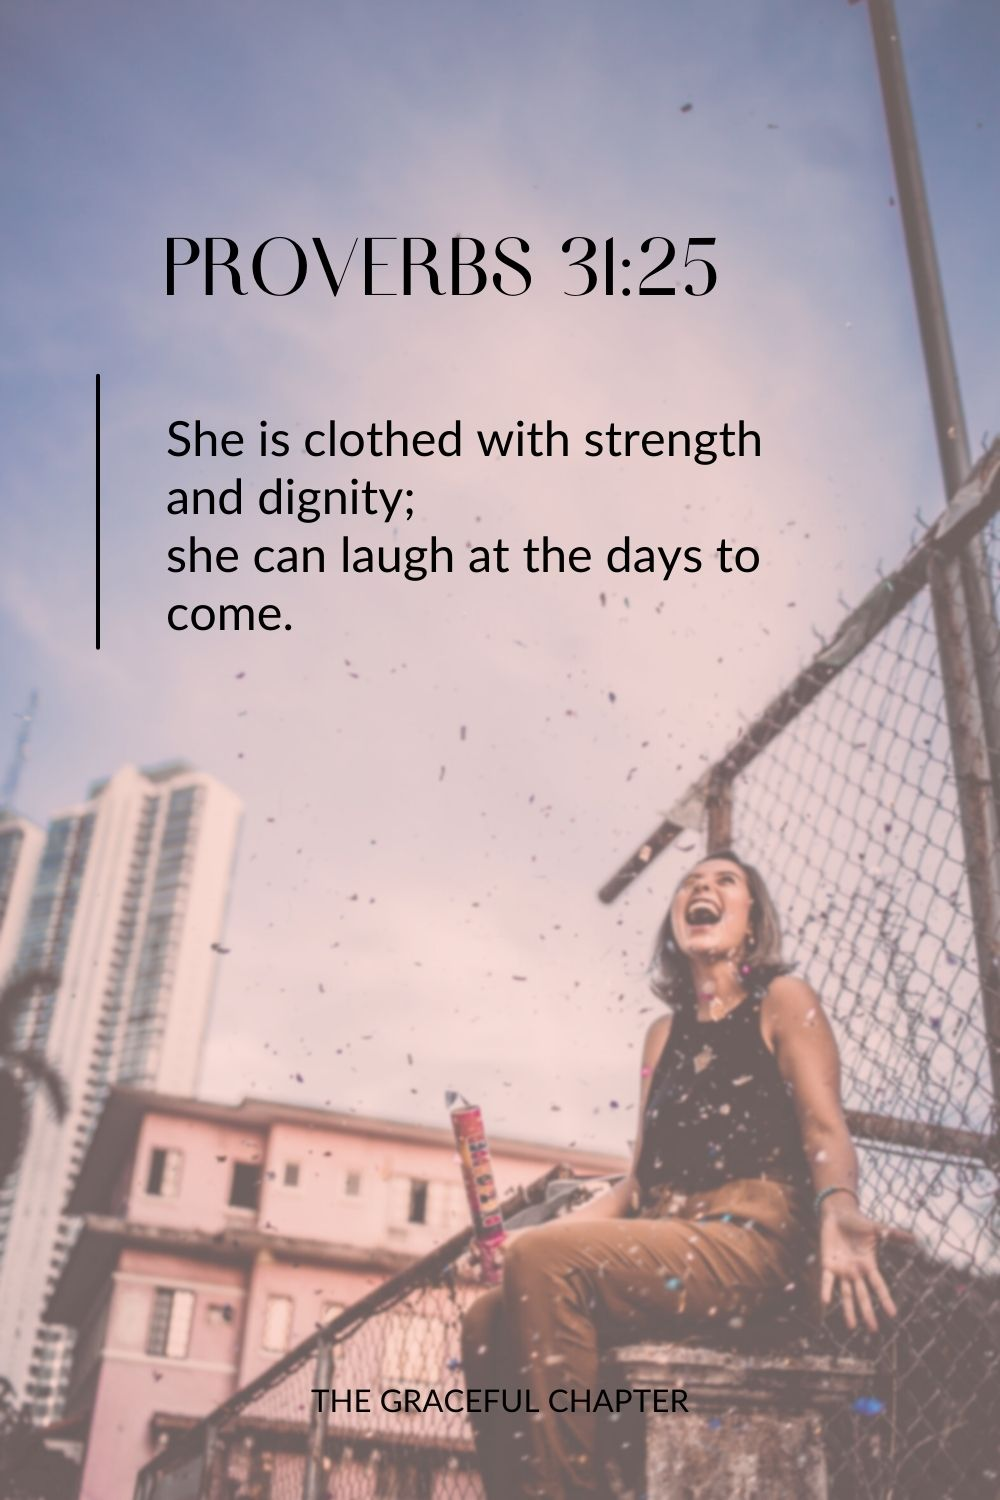 She is clothed with strength and dignity; she can laugh at the days to come. She is clothed with strength and dignity; she can laugh at the days to come. Proverbs 31:25